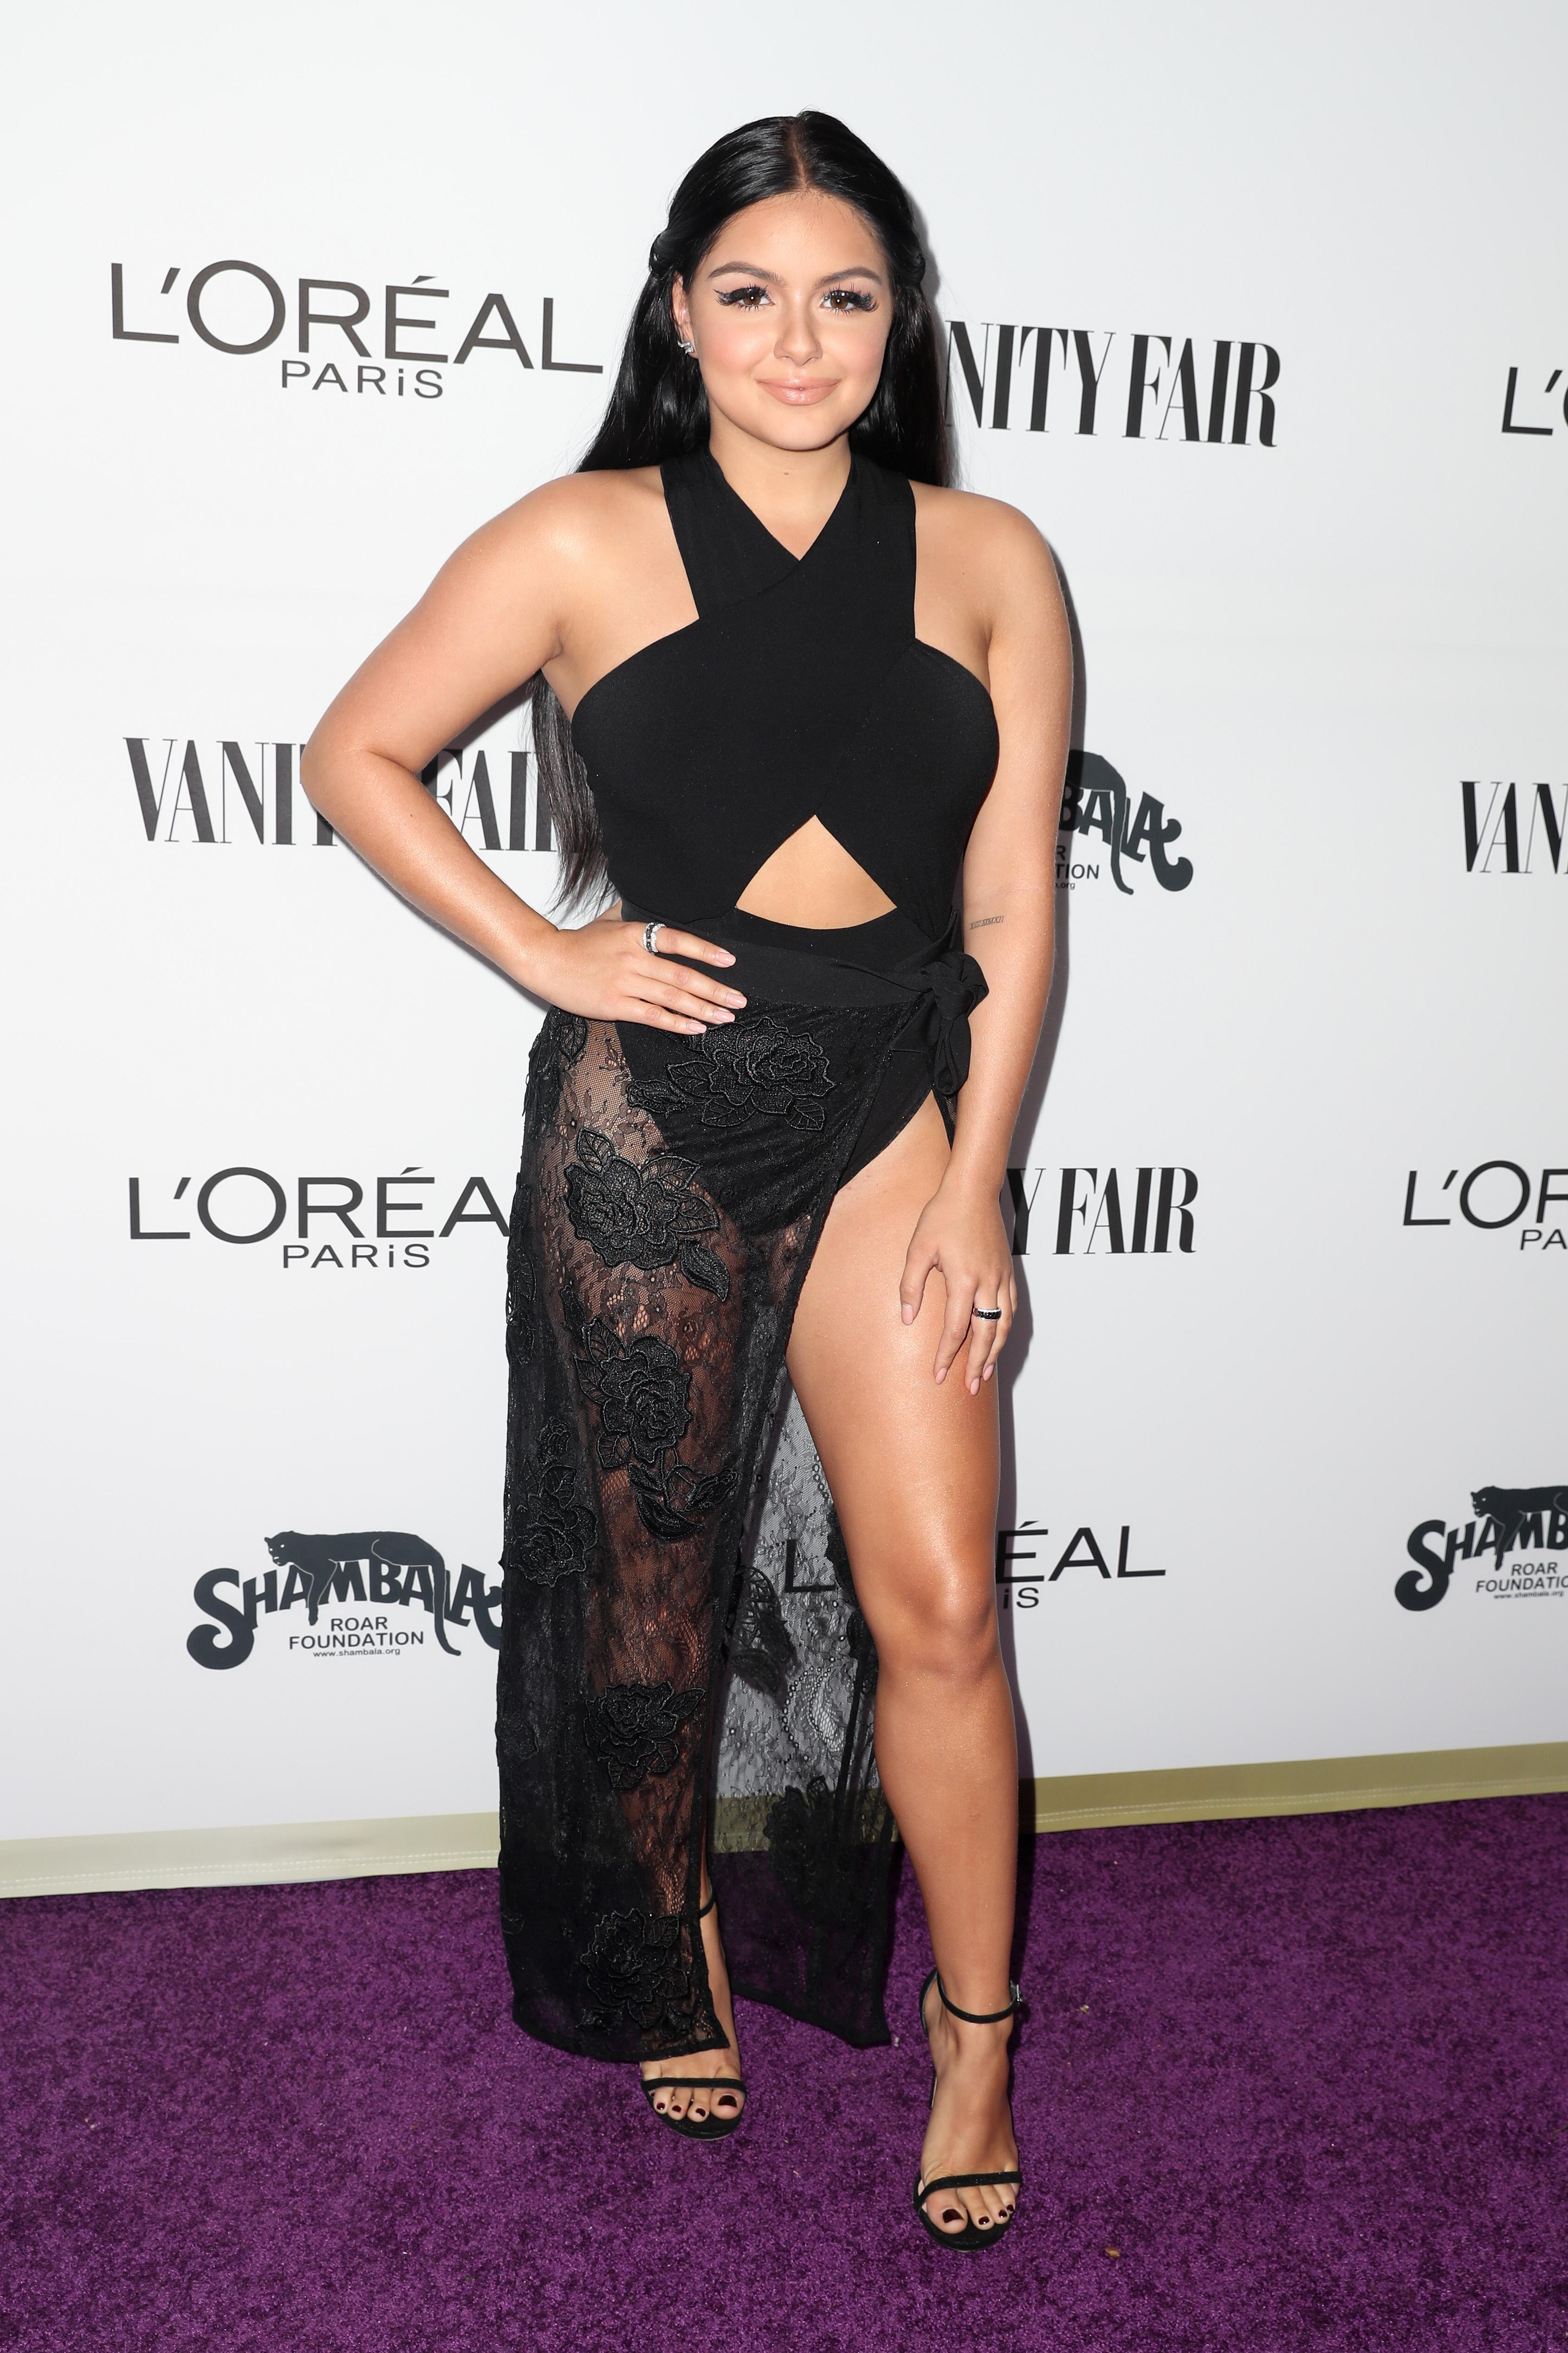 Ariel Winter Film Dan Acara Tv : ariel, winter, acara, Ariel, Winter, Flashes, See-through, Skirt, Cut-out, Bodysuit, Attends, Star-studded, Young, Hollywood